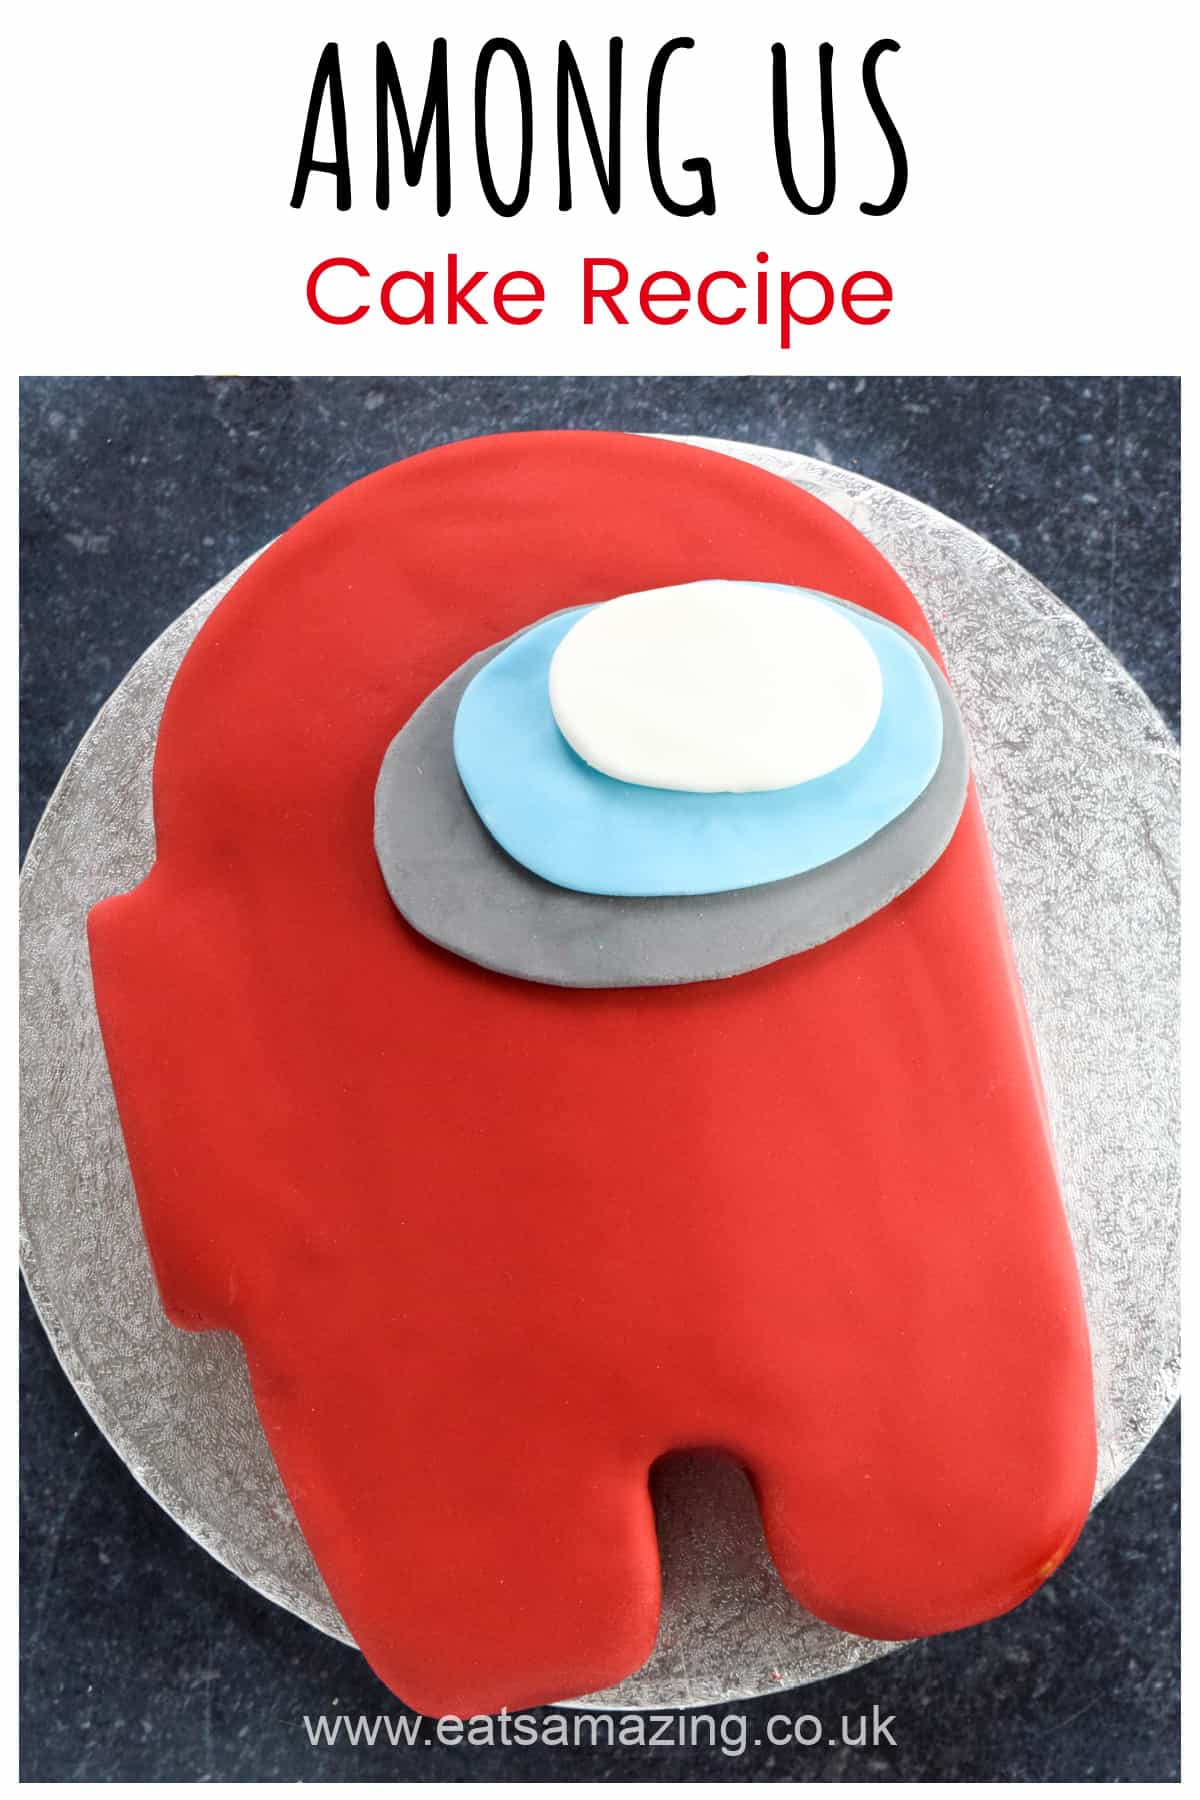 How to make an easy Among Us Crewmate themed cake - recipe with step by step photos